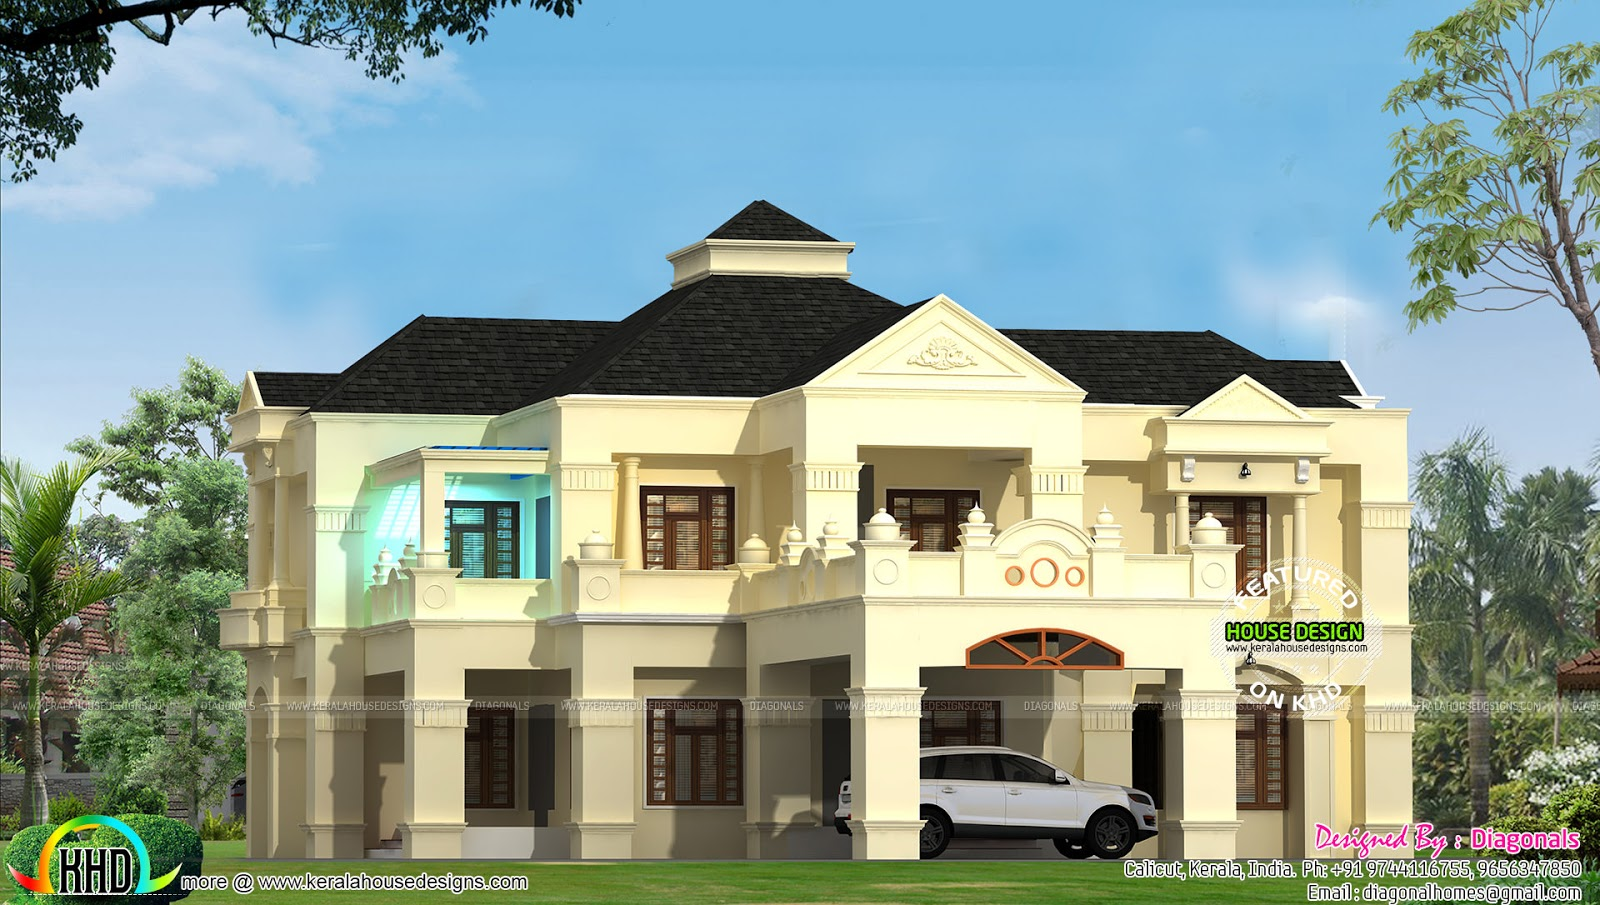 Colonial style 4500 sq ft home design kerala home design 4500 sq ft house plans